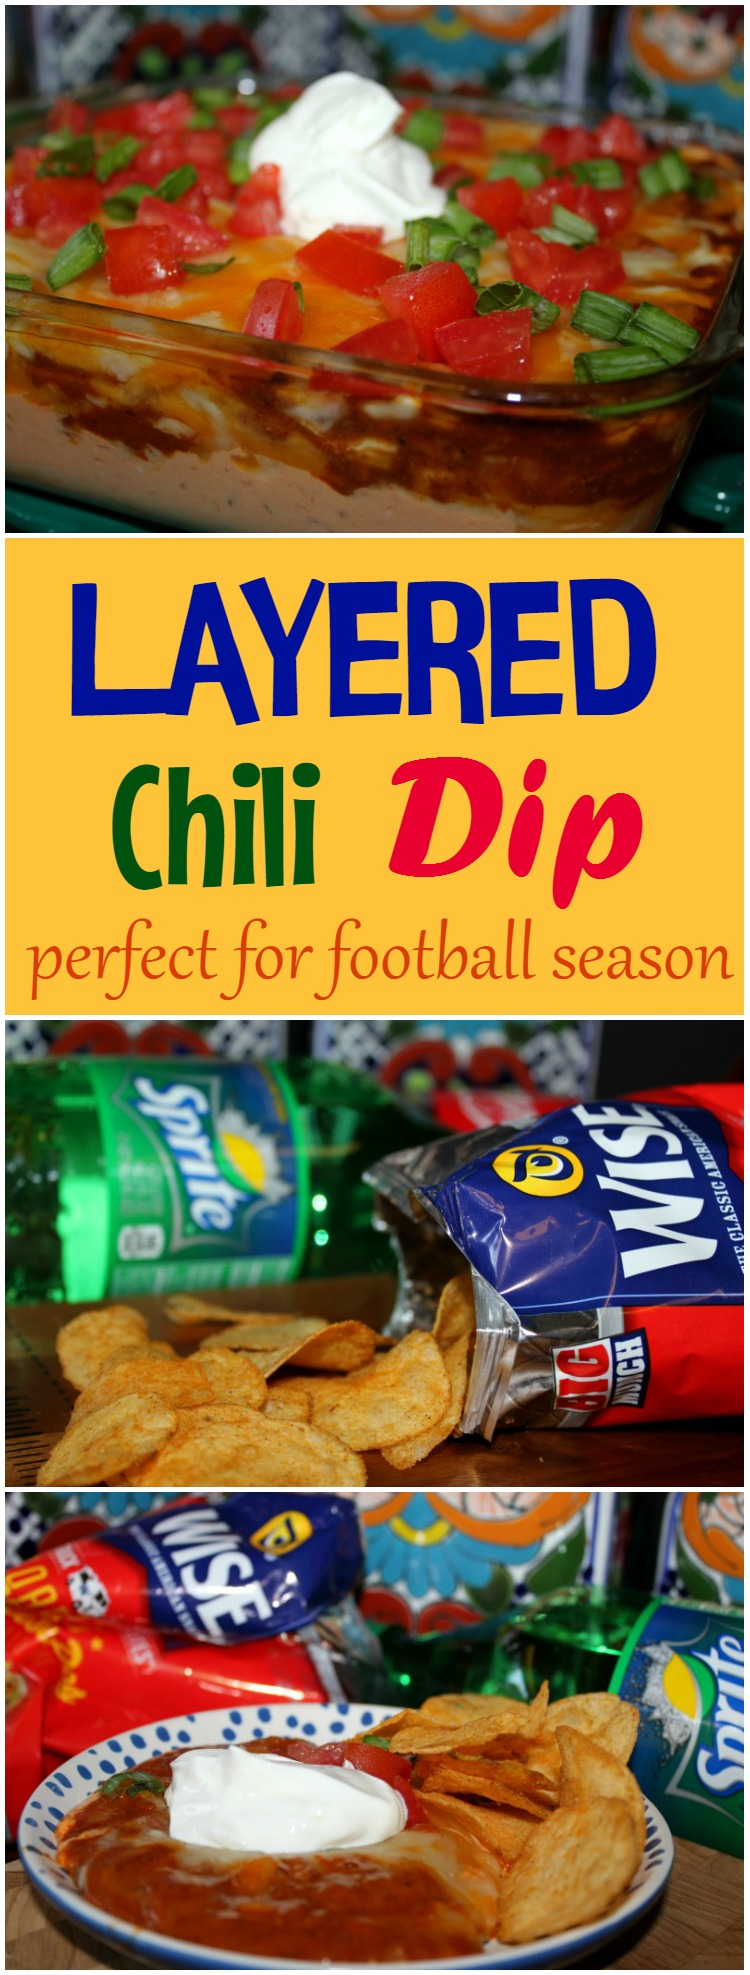 Layered Chili Dip Perfect for Football Season and Tailgating